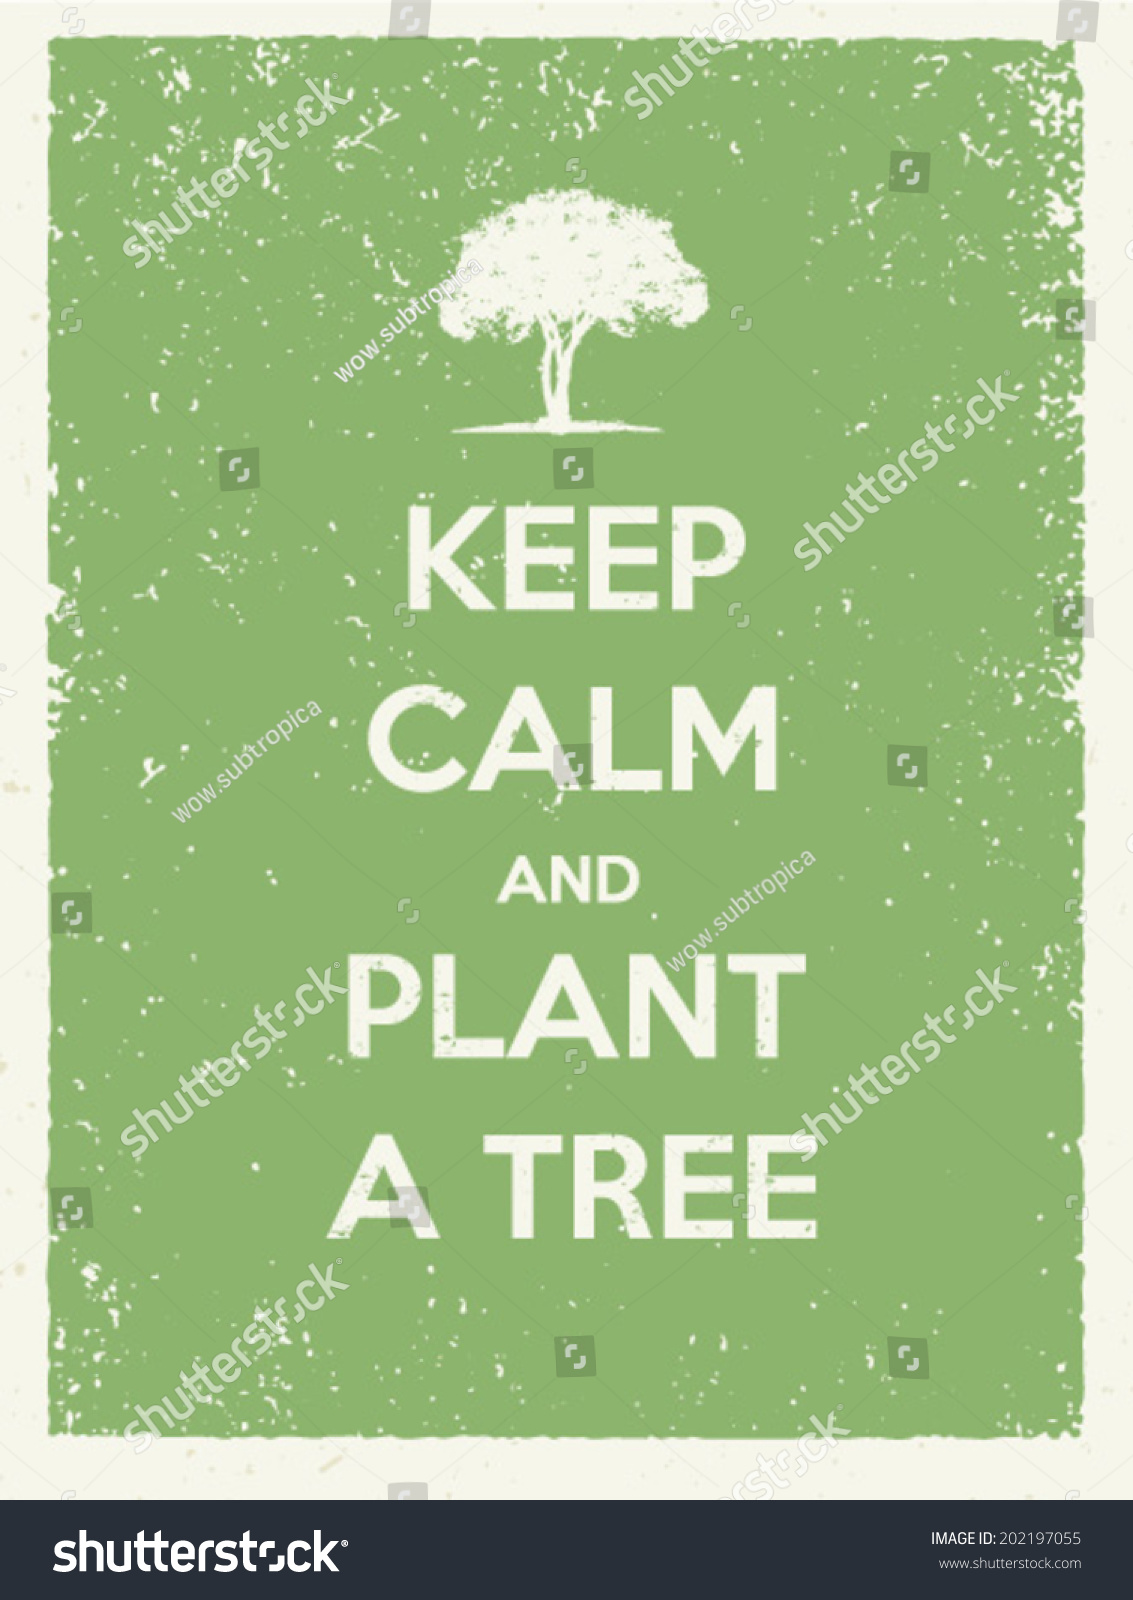 Keep Calm Plant Tree Eco Friendly Stock Vector 202197055 ...